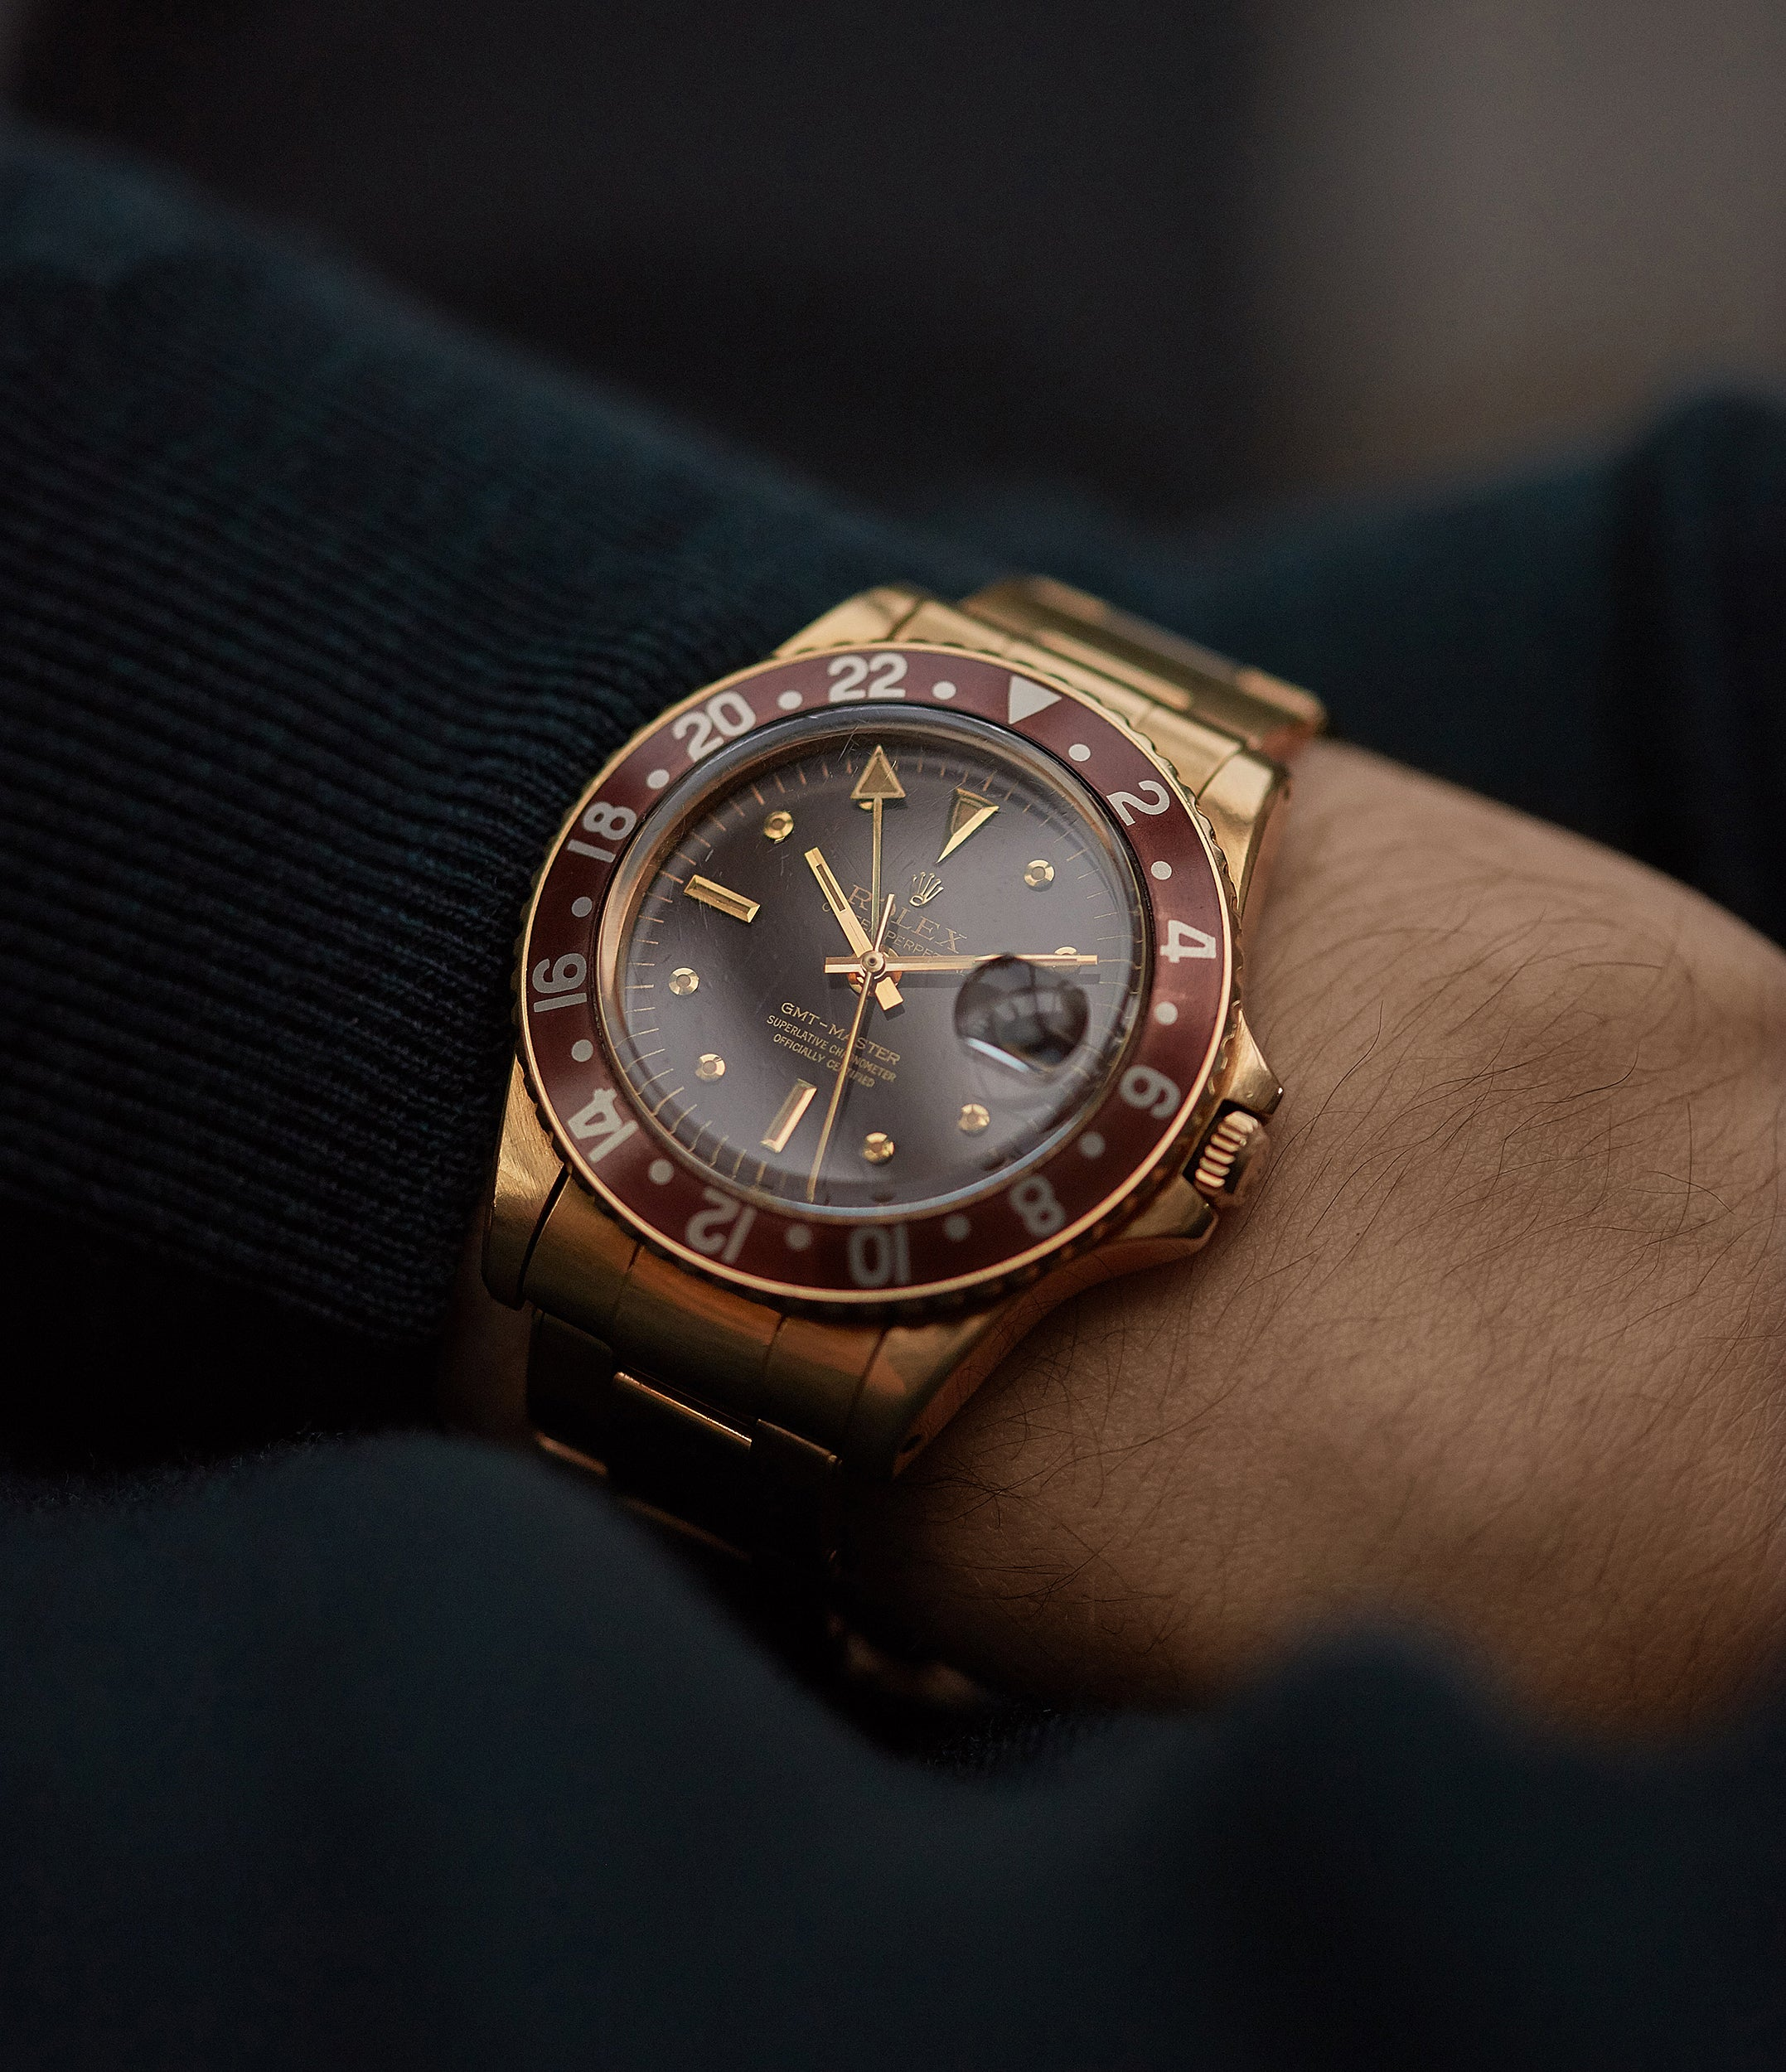 men's luxury wristwatch vintage Rolex GMT-Master Concorde 1675/8 yellow gold watch full set for sale online at A Collected Man London UK specialist of rare watches